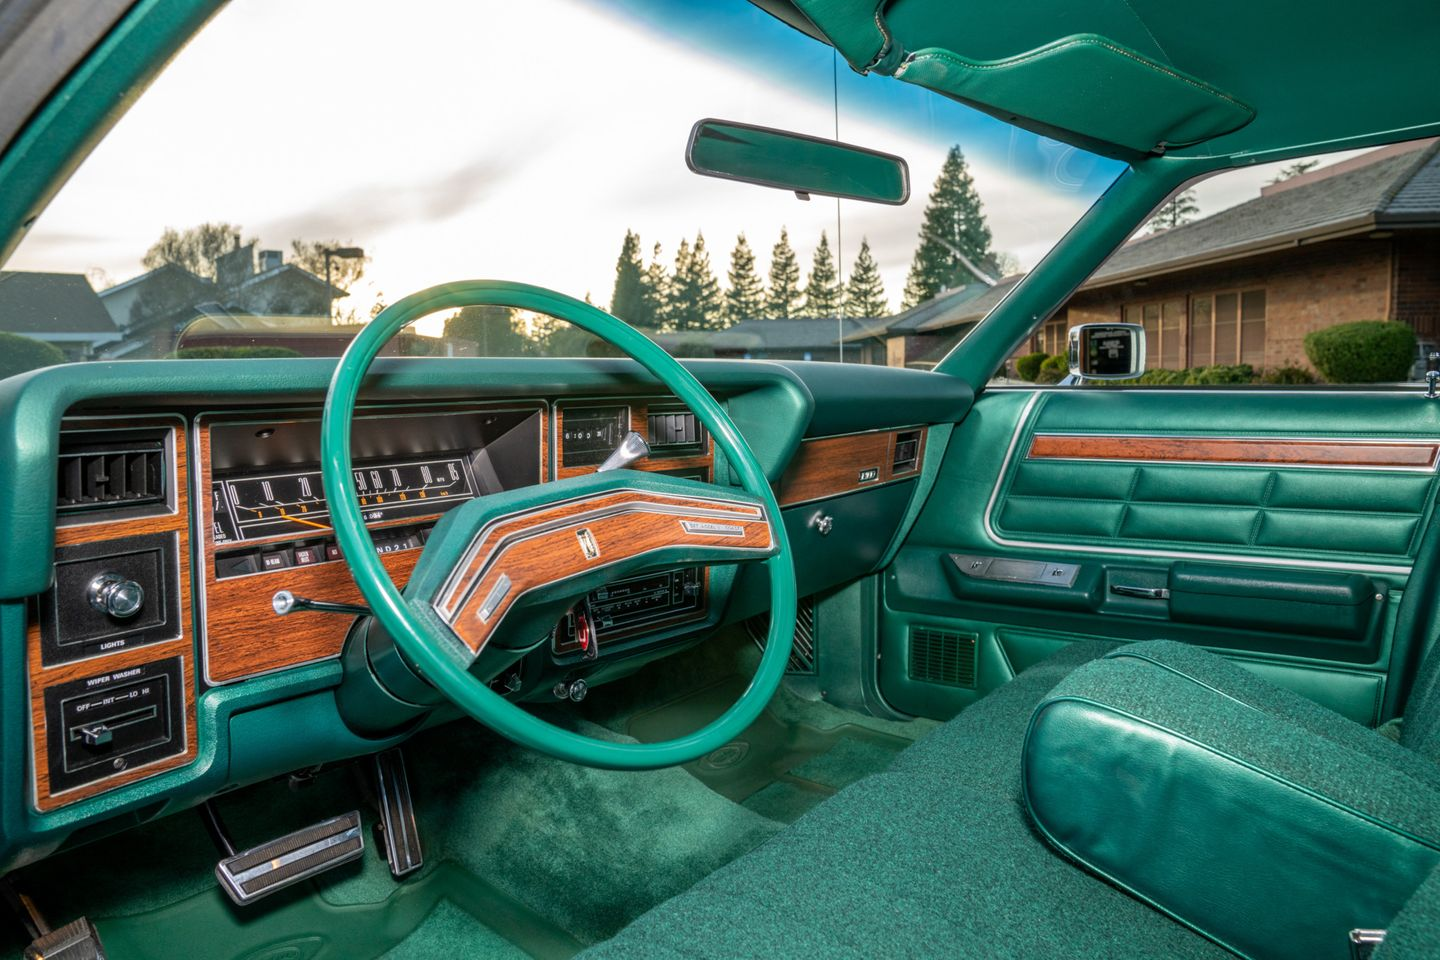 5k-Mile 1978 Ford LTD Country Squire